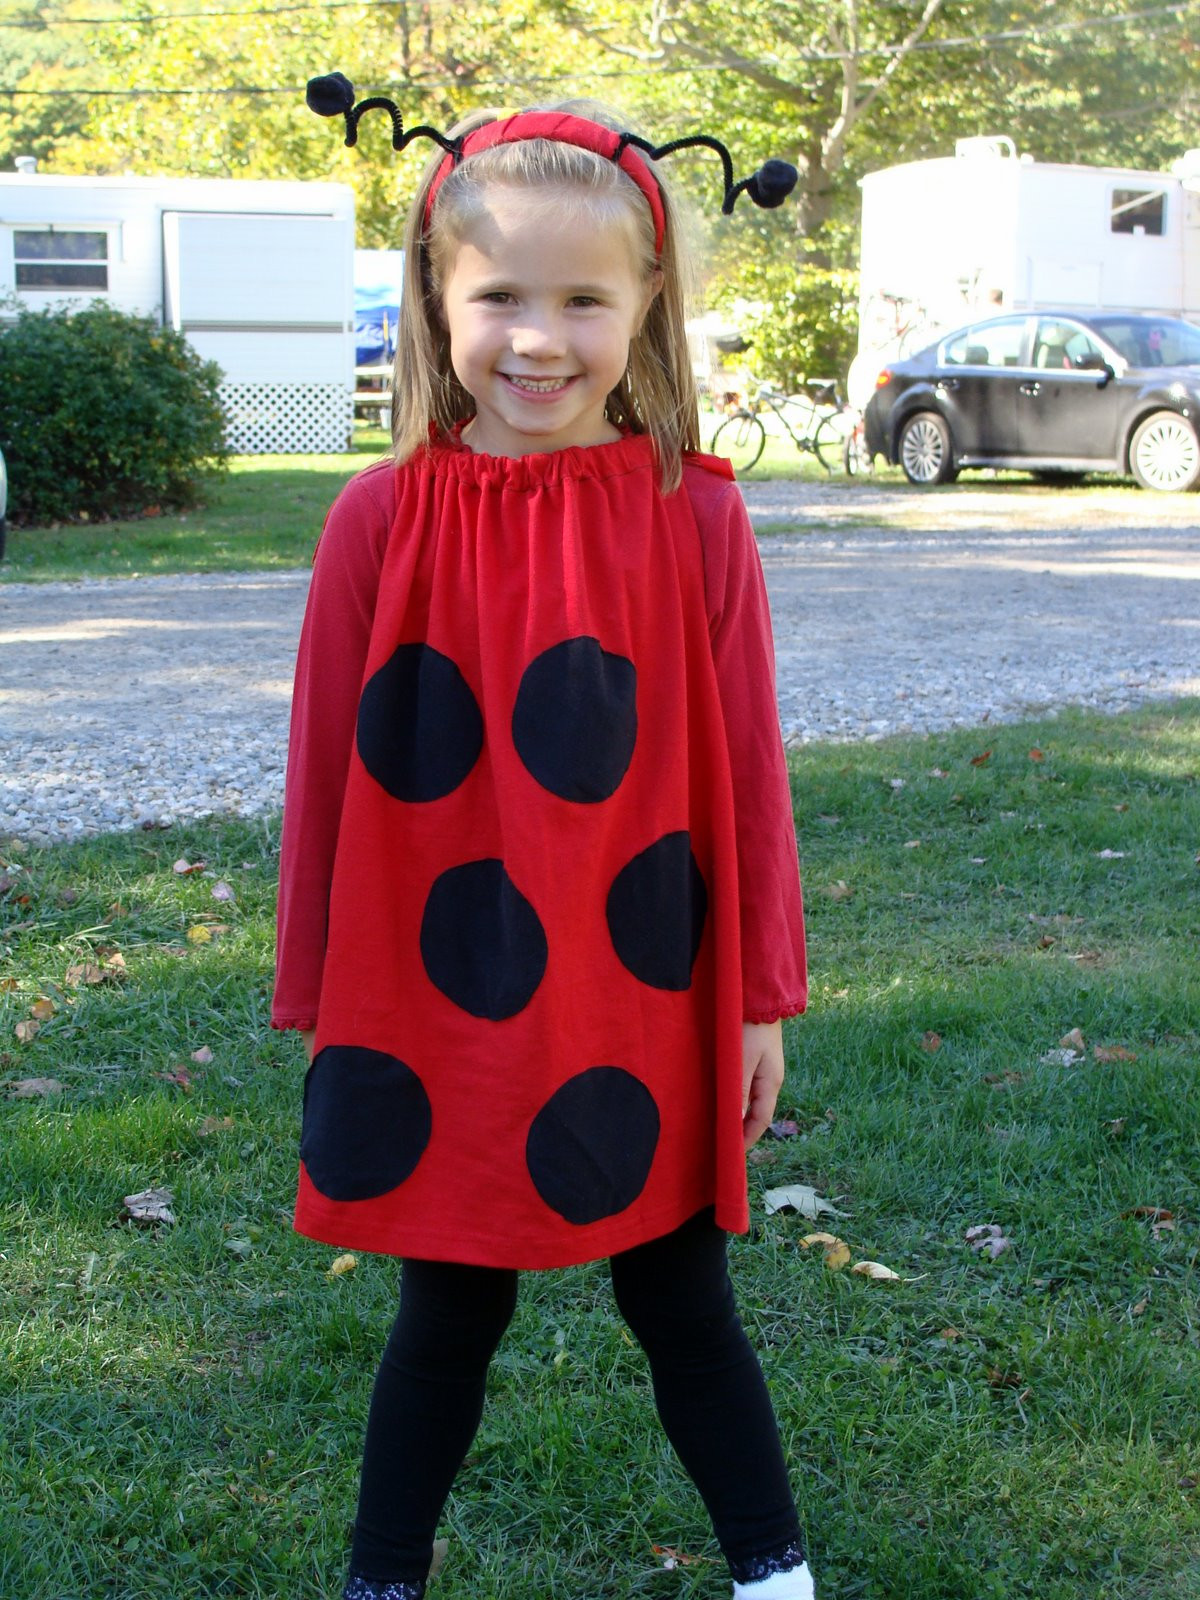 Best ideas about Simple DIY Halloween Costumes . Save or Pin 7 All To her Super Easy LadyBug Costume Now.